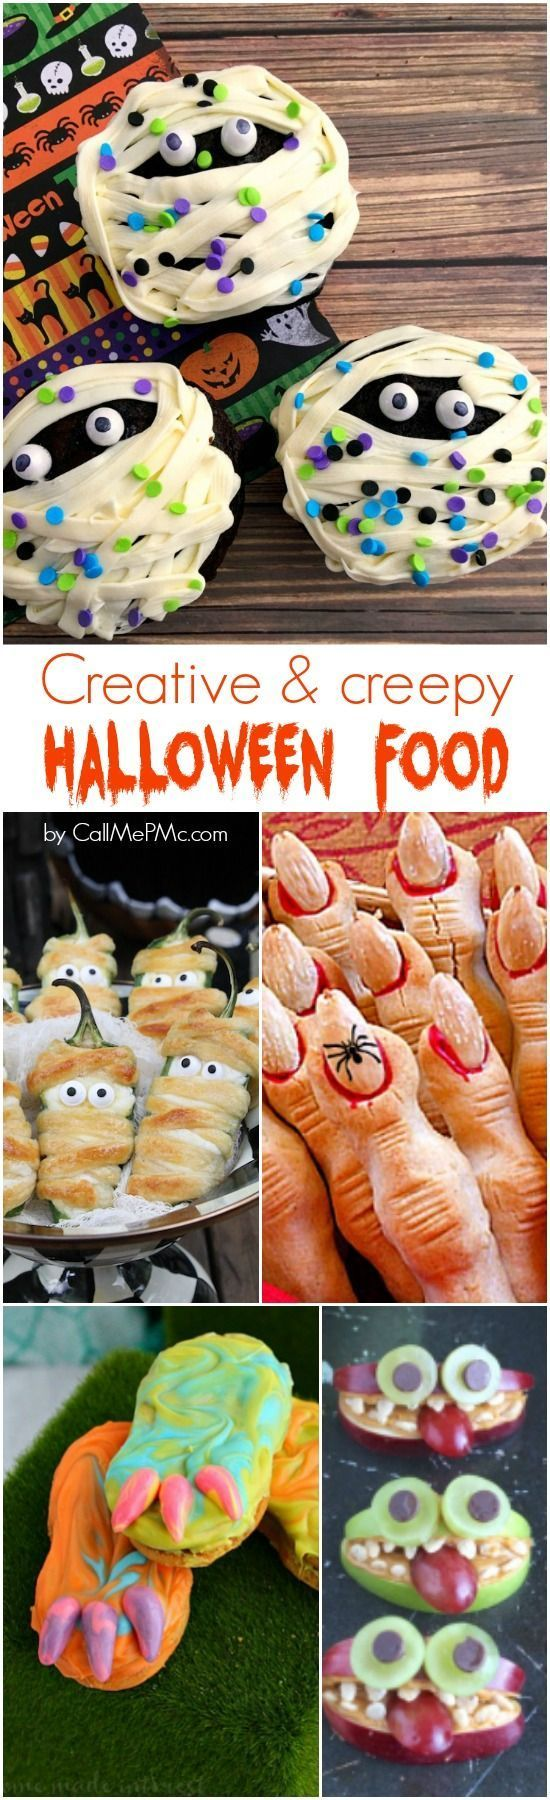 Kids And S Alike Love Creative Creepy Food Have Fun Reviewing The Recipes Below Make Them For Your Parties Or Snacks